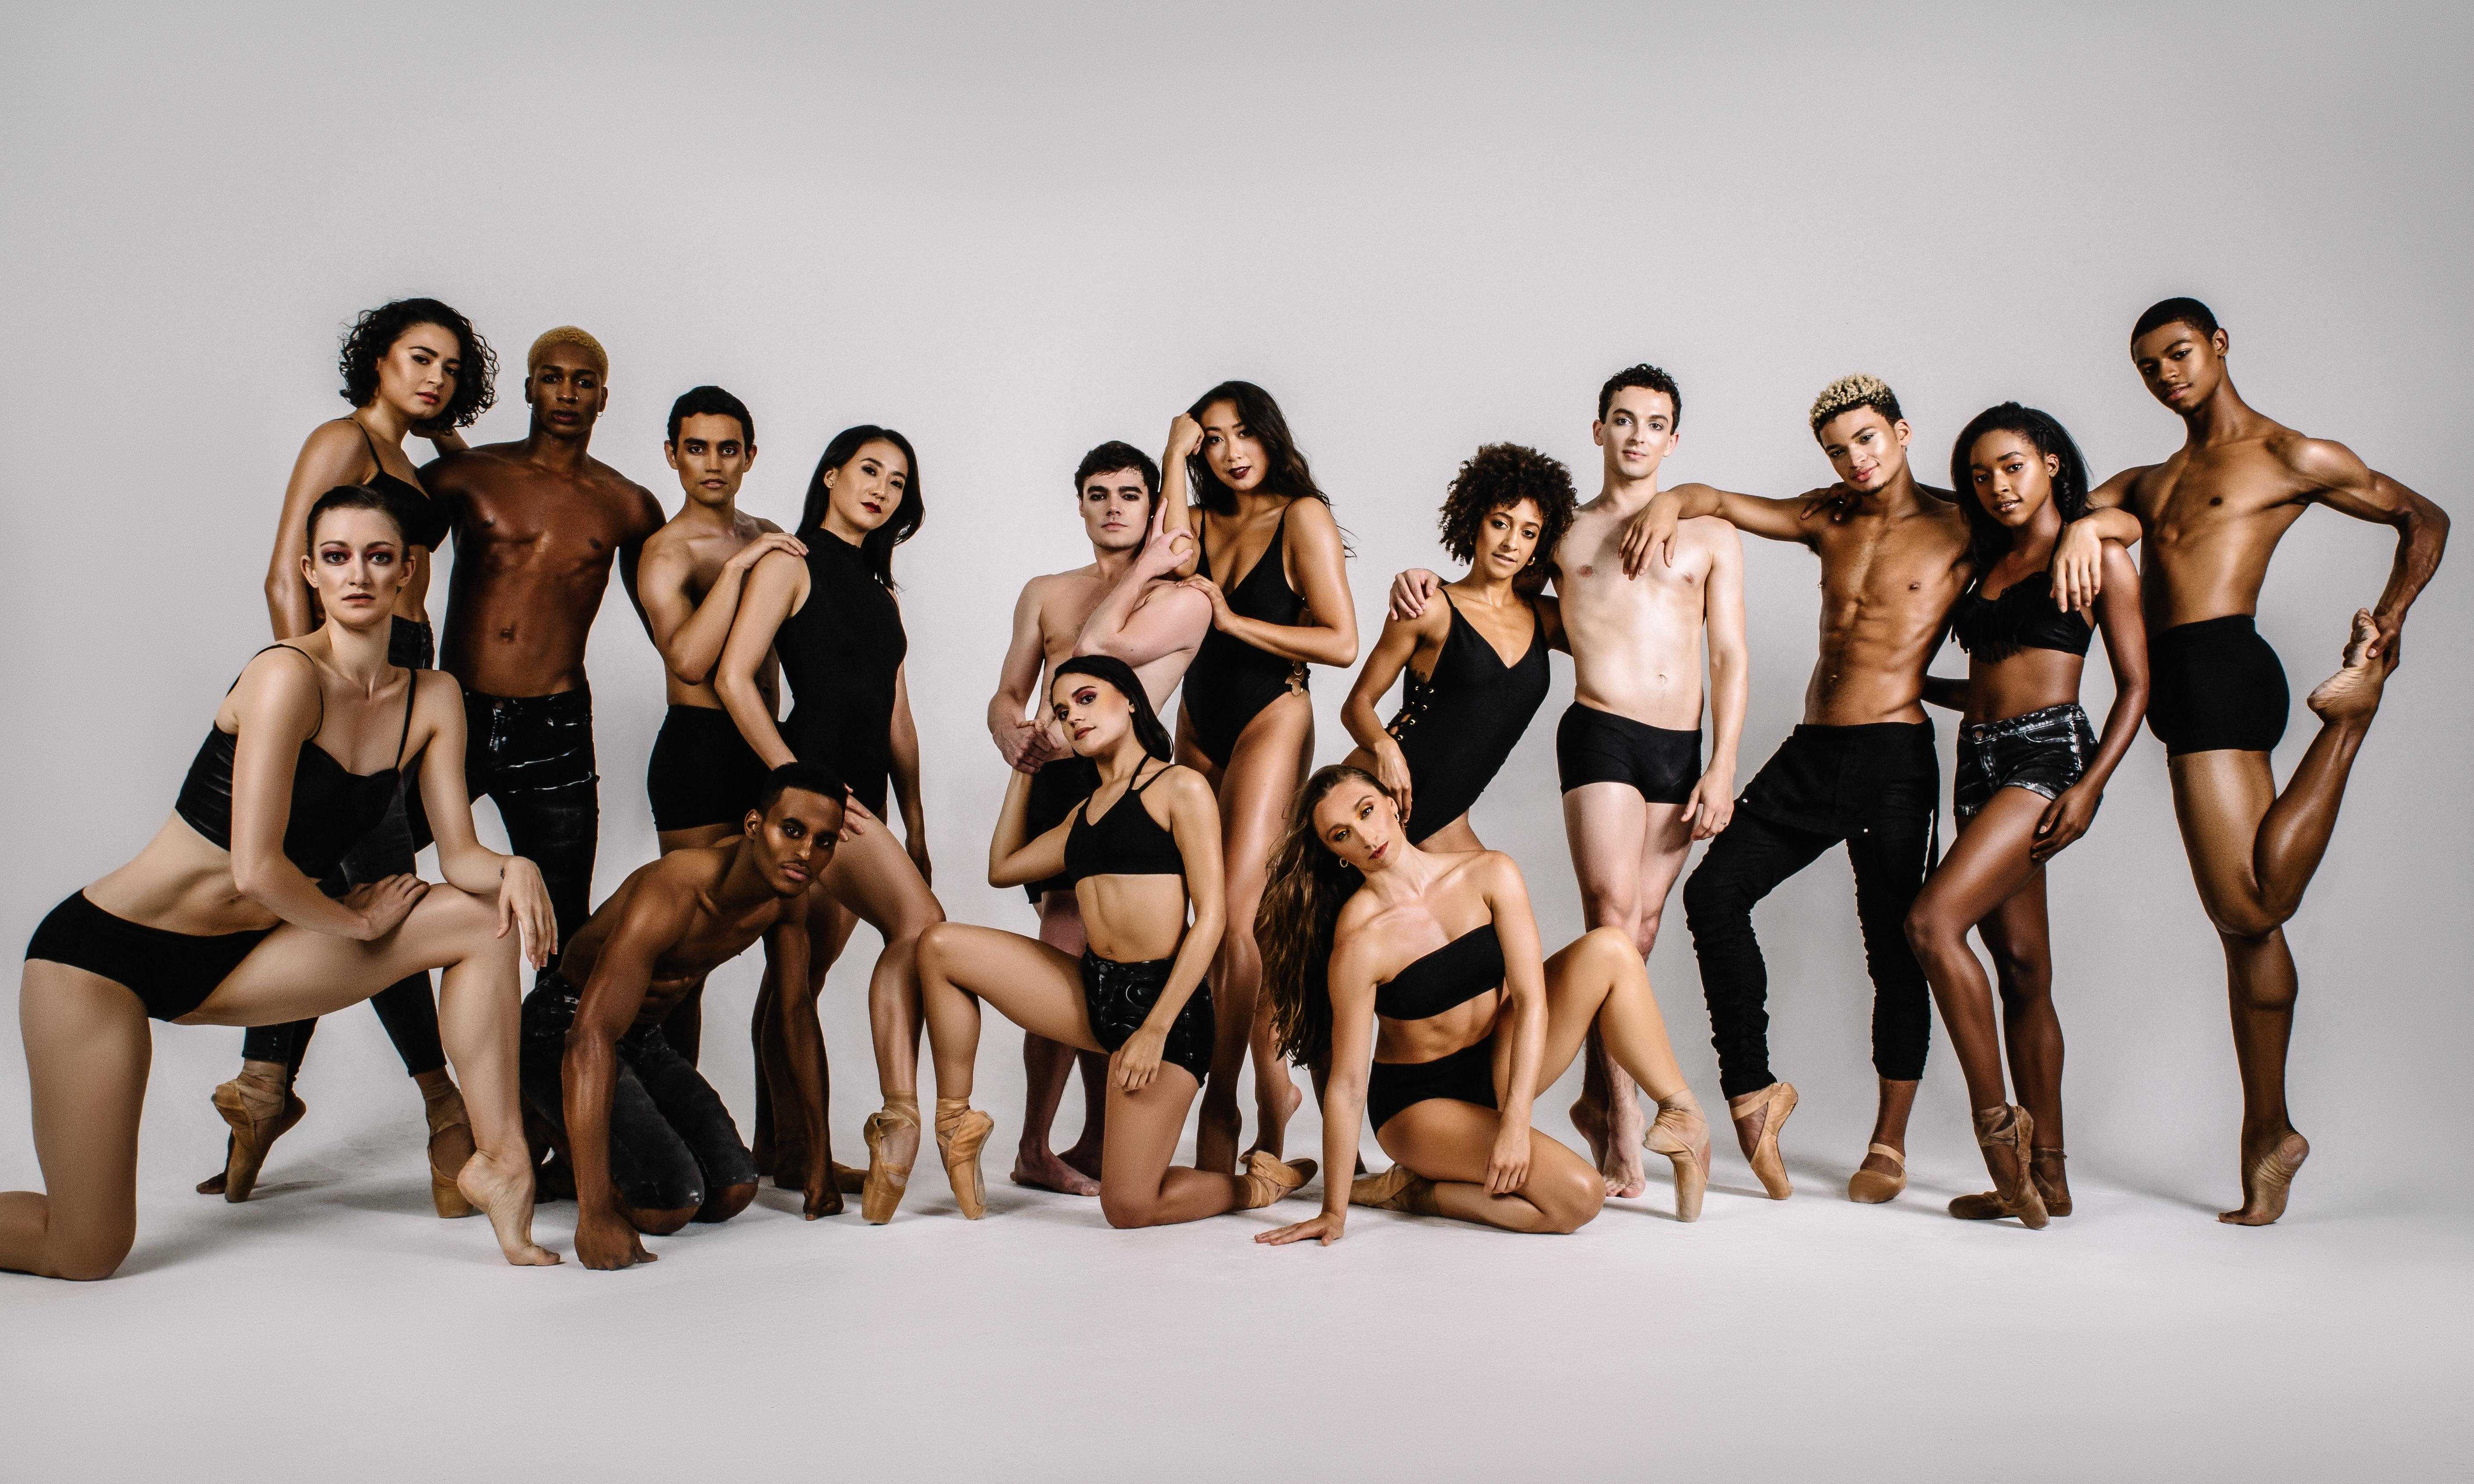 'It's really special': the ballet company shaking up the world of dance